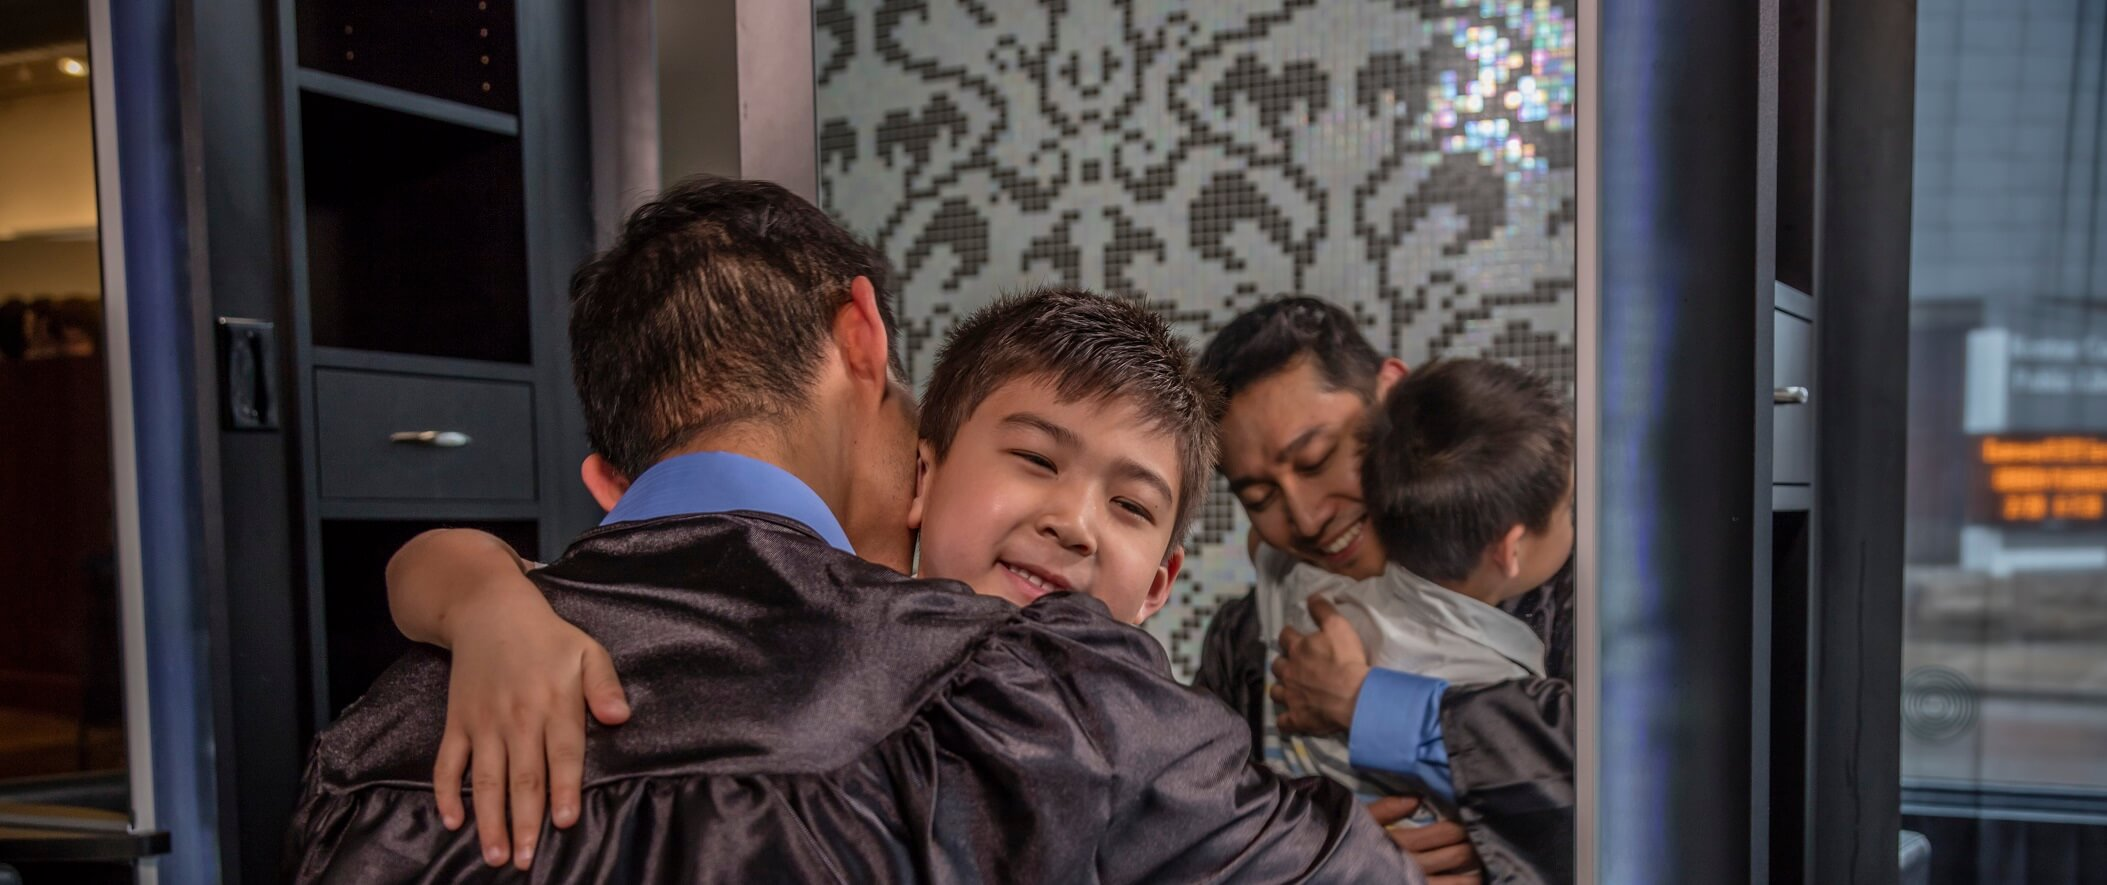 father in graduation robe hugging son